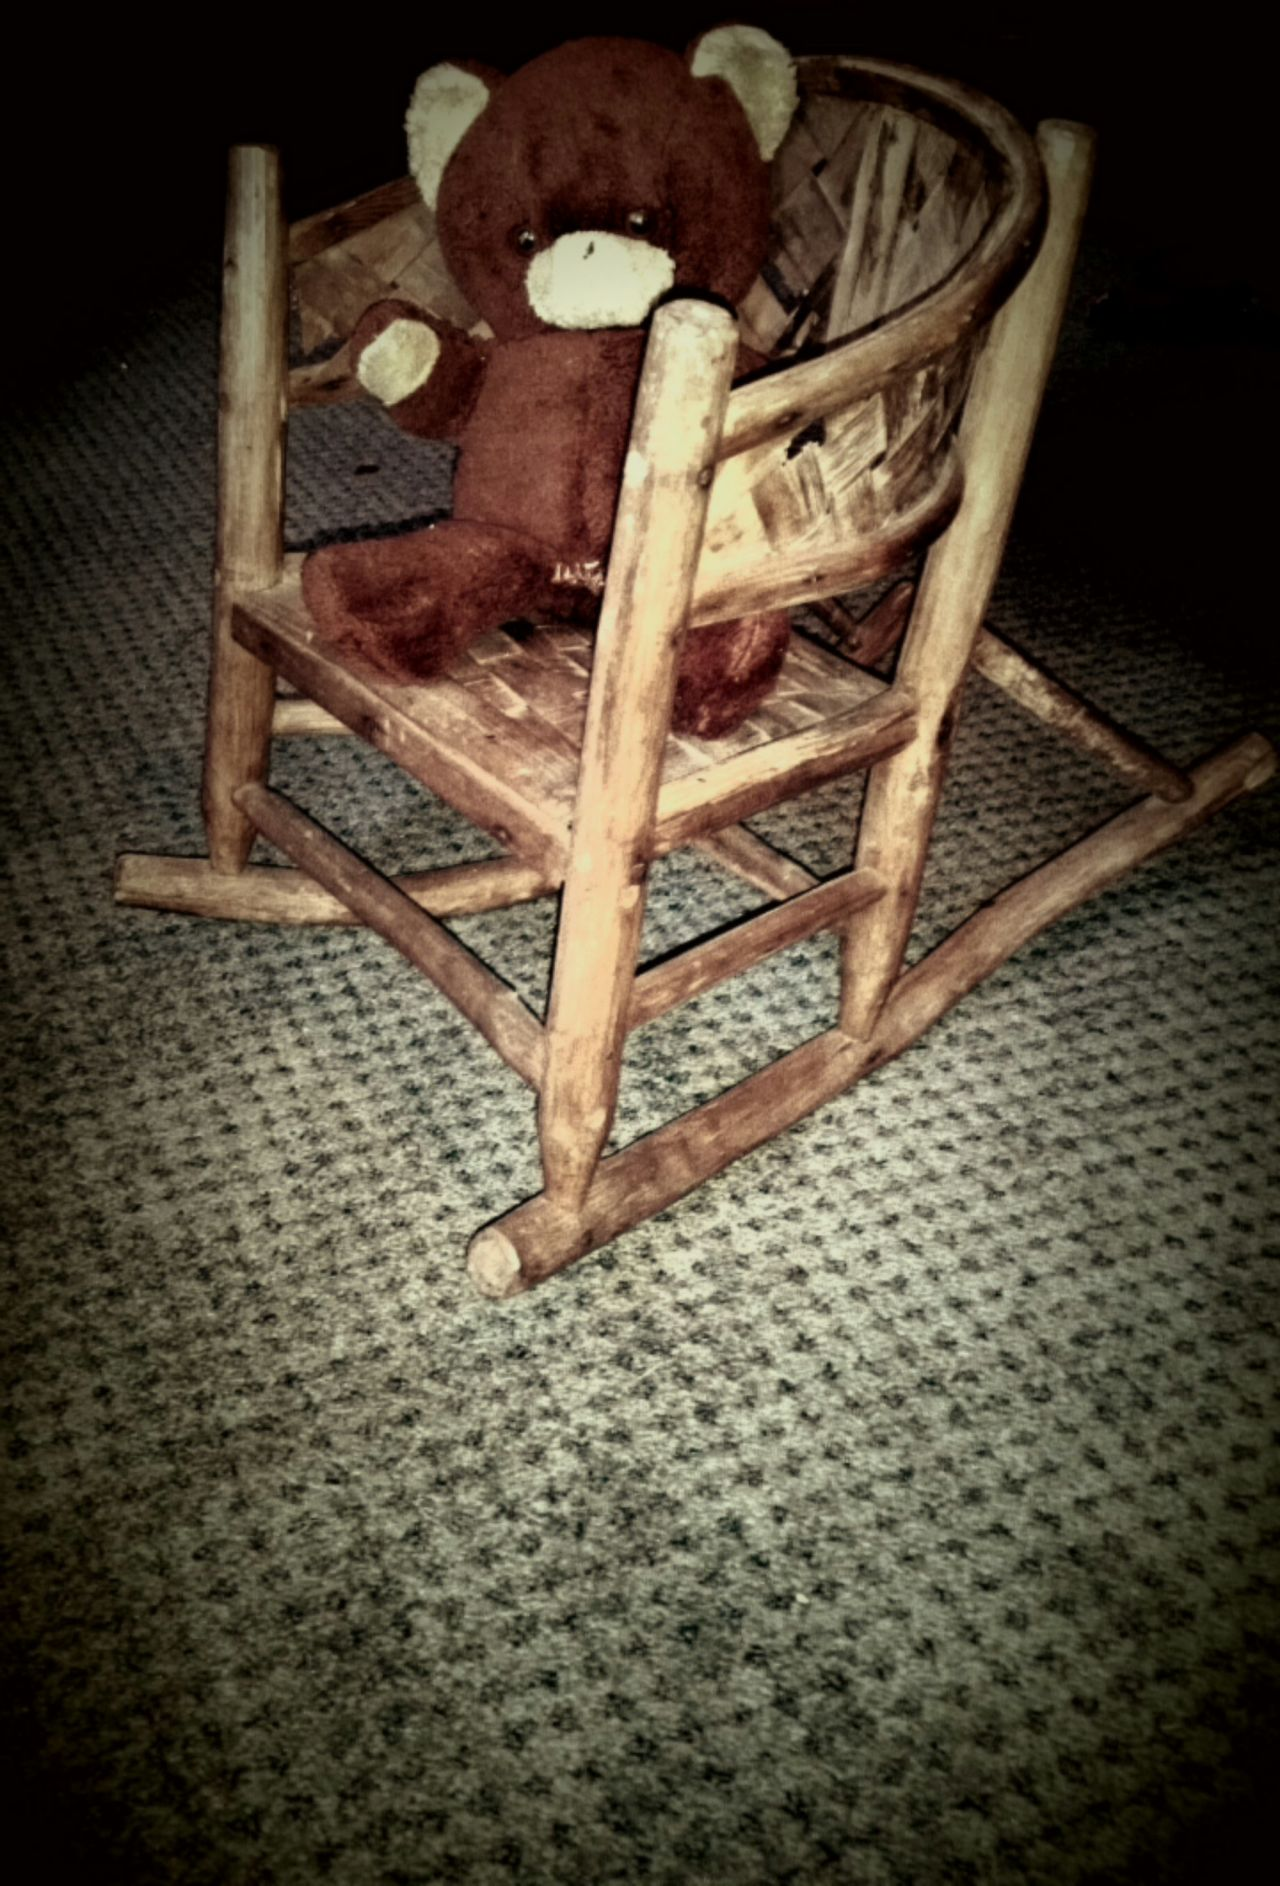 Antique Rockingchair Vintage Teddy Bear Old Children's Rocking Chair Children Toys Old Kids Toys Antique Furniture Antique Toys